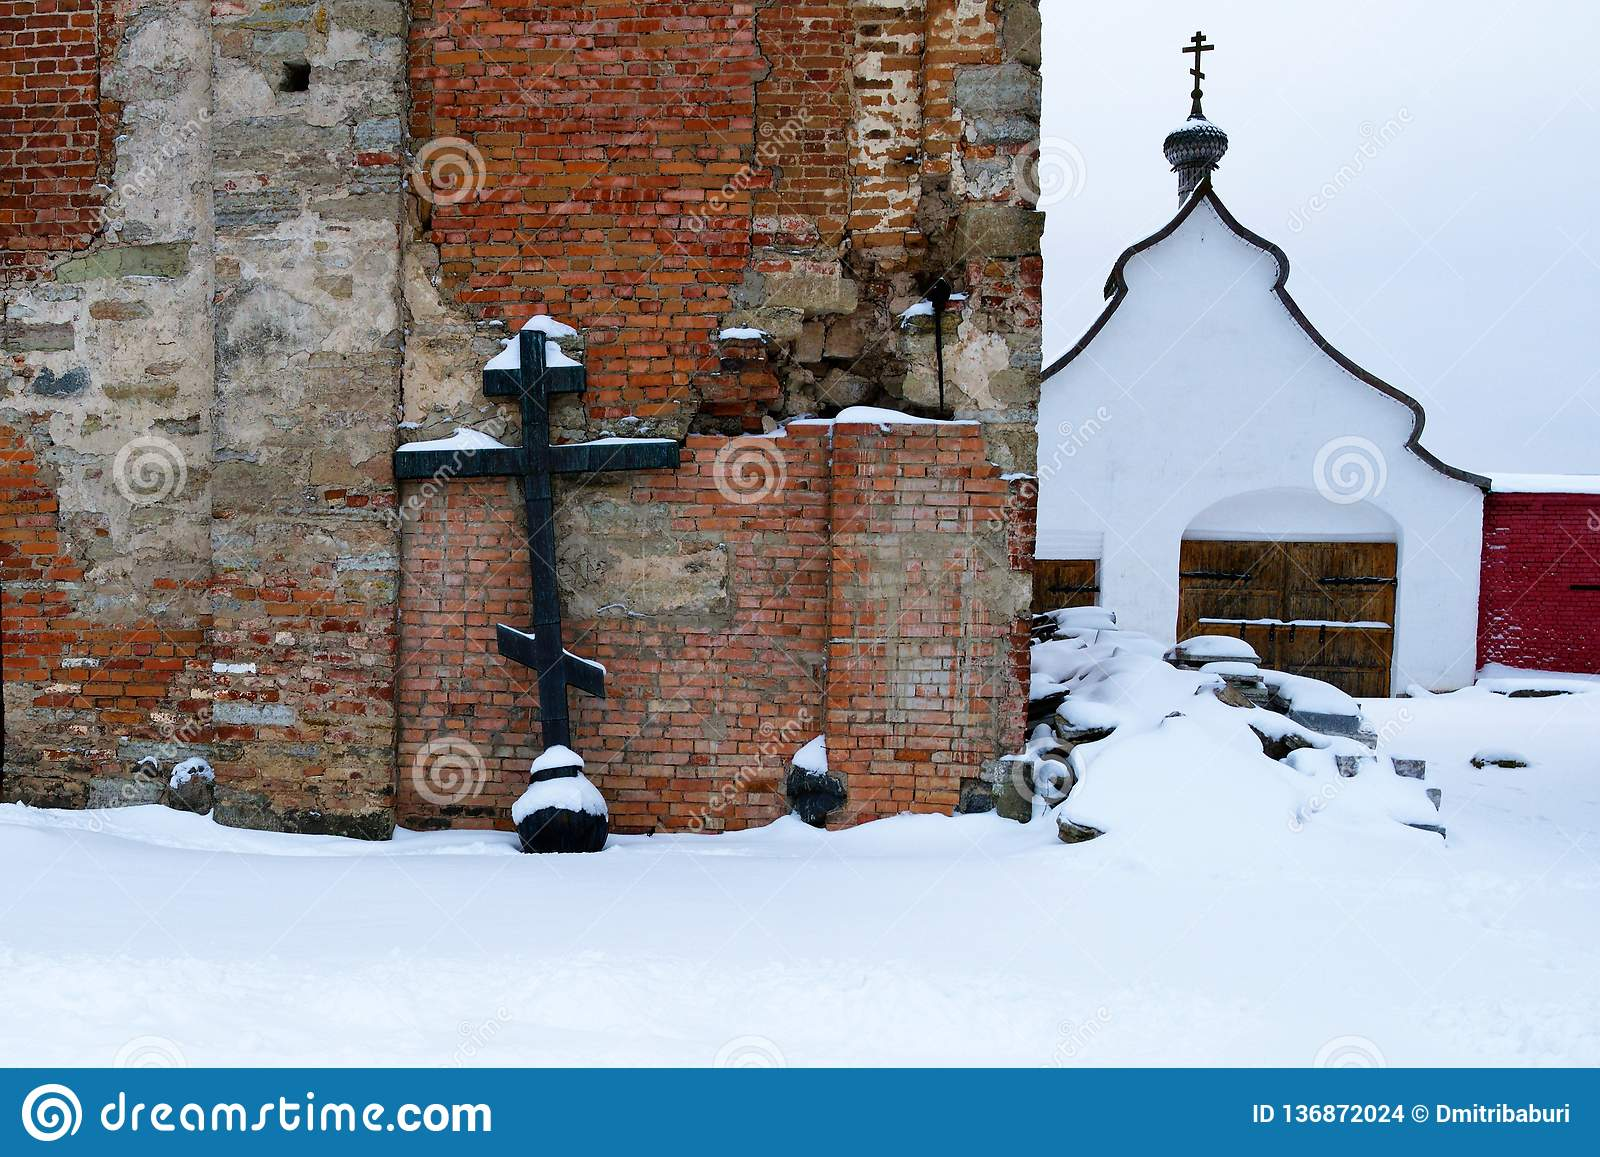 Orthodox cross, shot from the dome of the dilapidated chapel in the men`s monastery, Russia, winter.